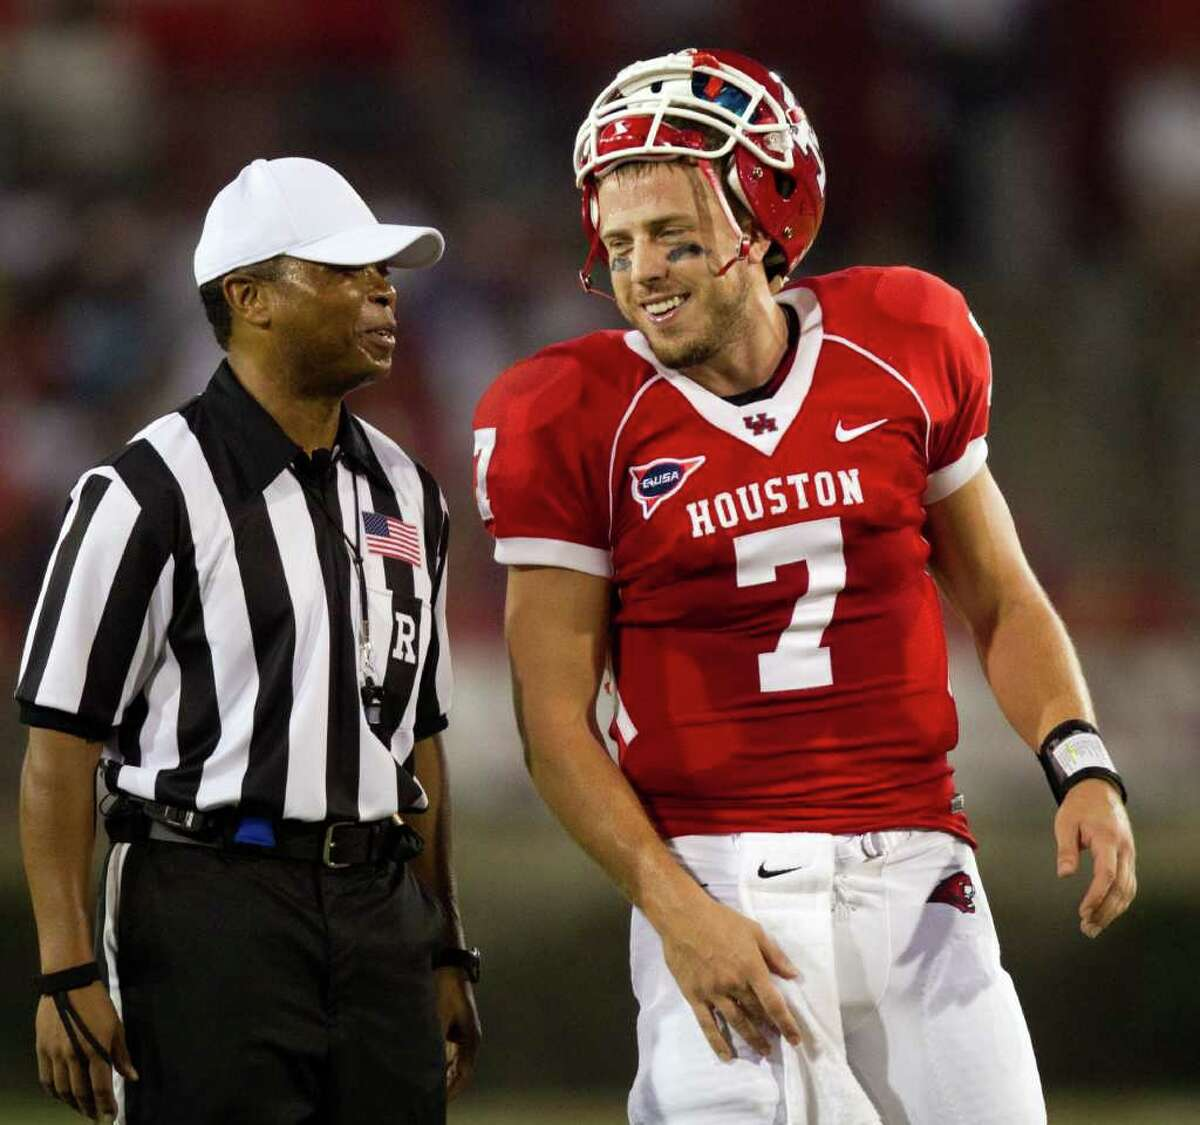 Houston Cougars quarterback Case Keenum (7) laughs with referee Jerry Banks during the first half of an NCAA football game against the Georgia State Panthers at Robertson Stadium, Saturday, Sept. 24, 2011, in Houston.